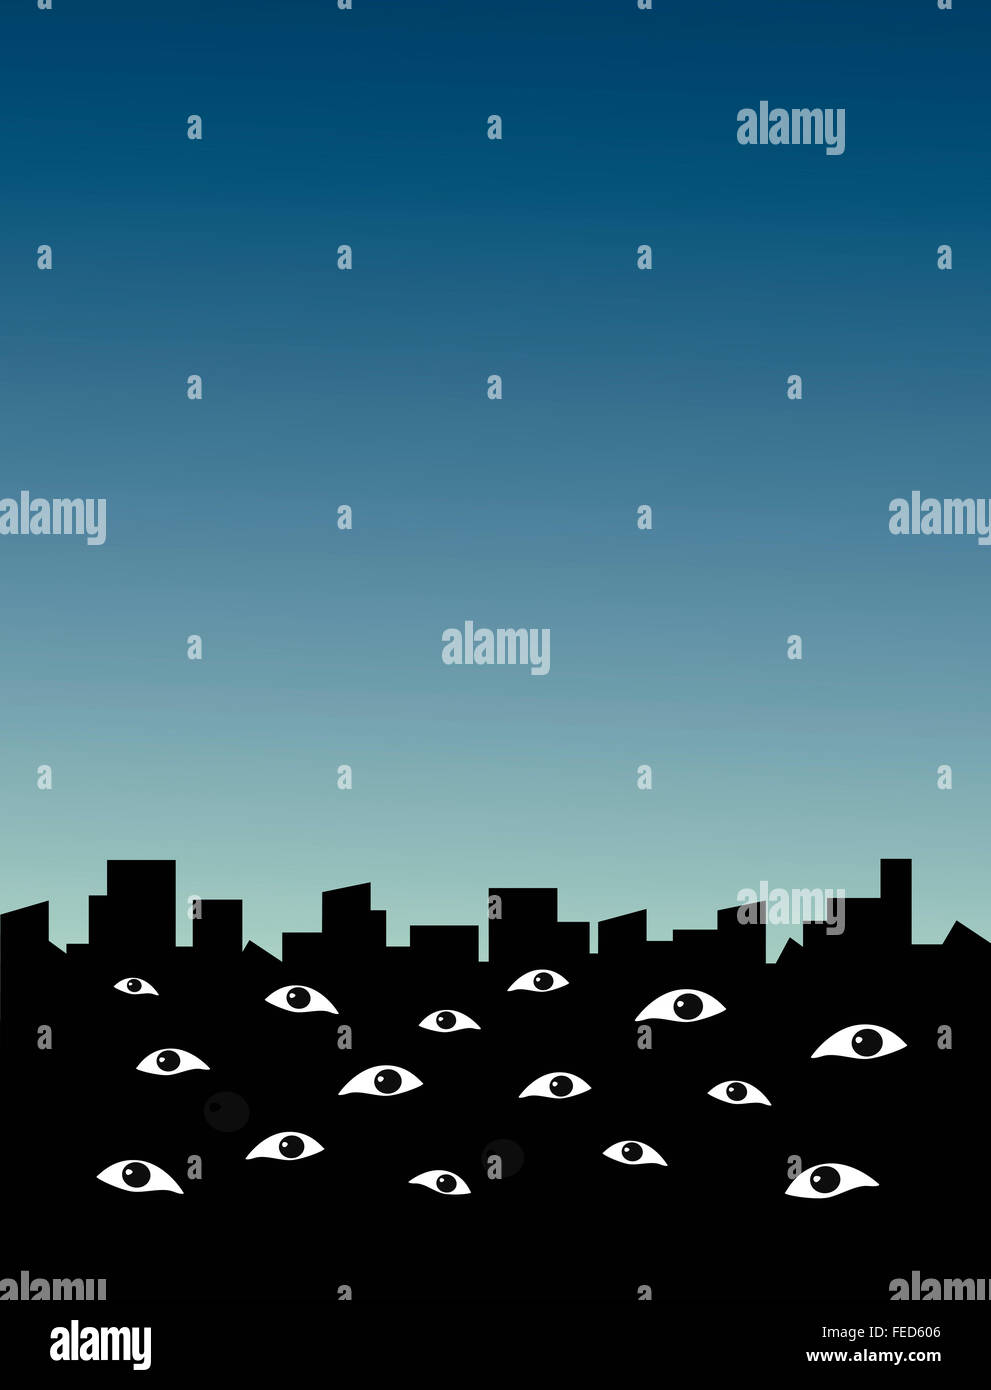 Silhouette of a city where eyes monitoring the viewer. Cityscape of surveillance. - Stock Image